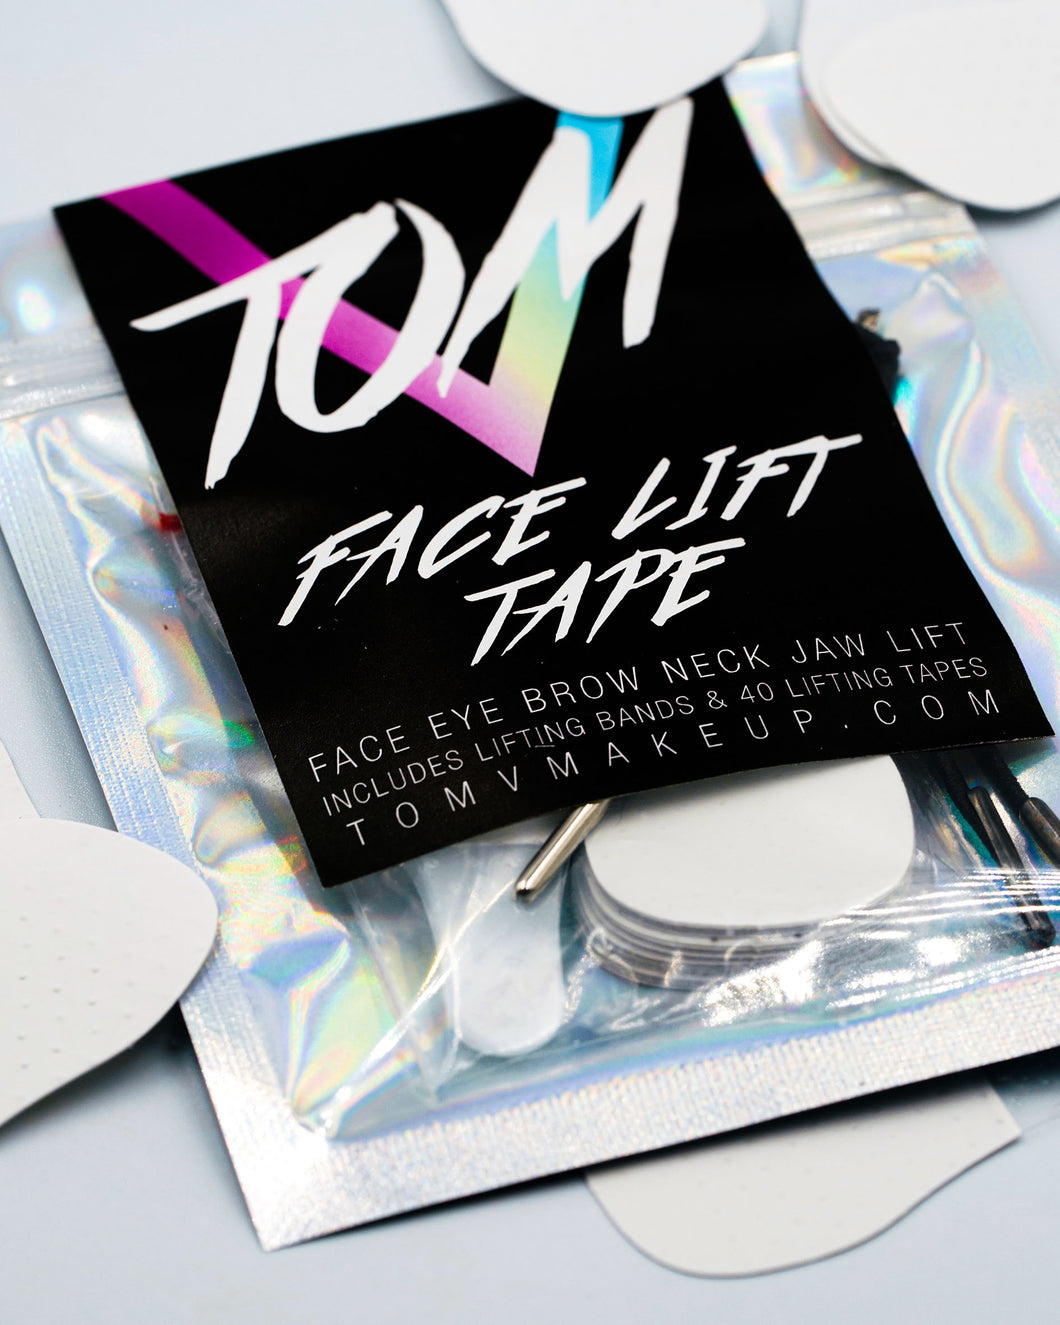 TOMVMAKEUP FACE LIFT TAPE